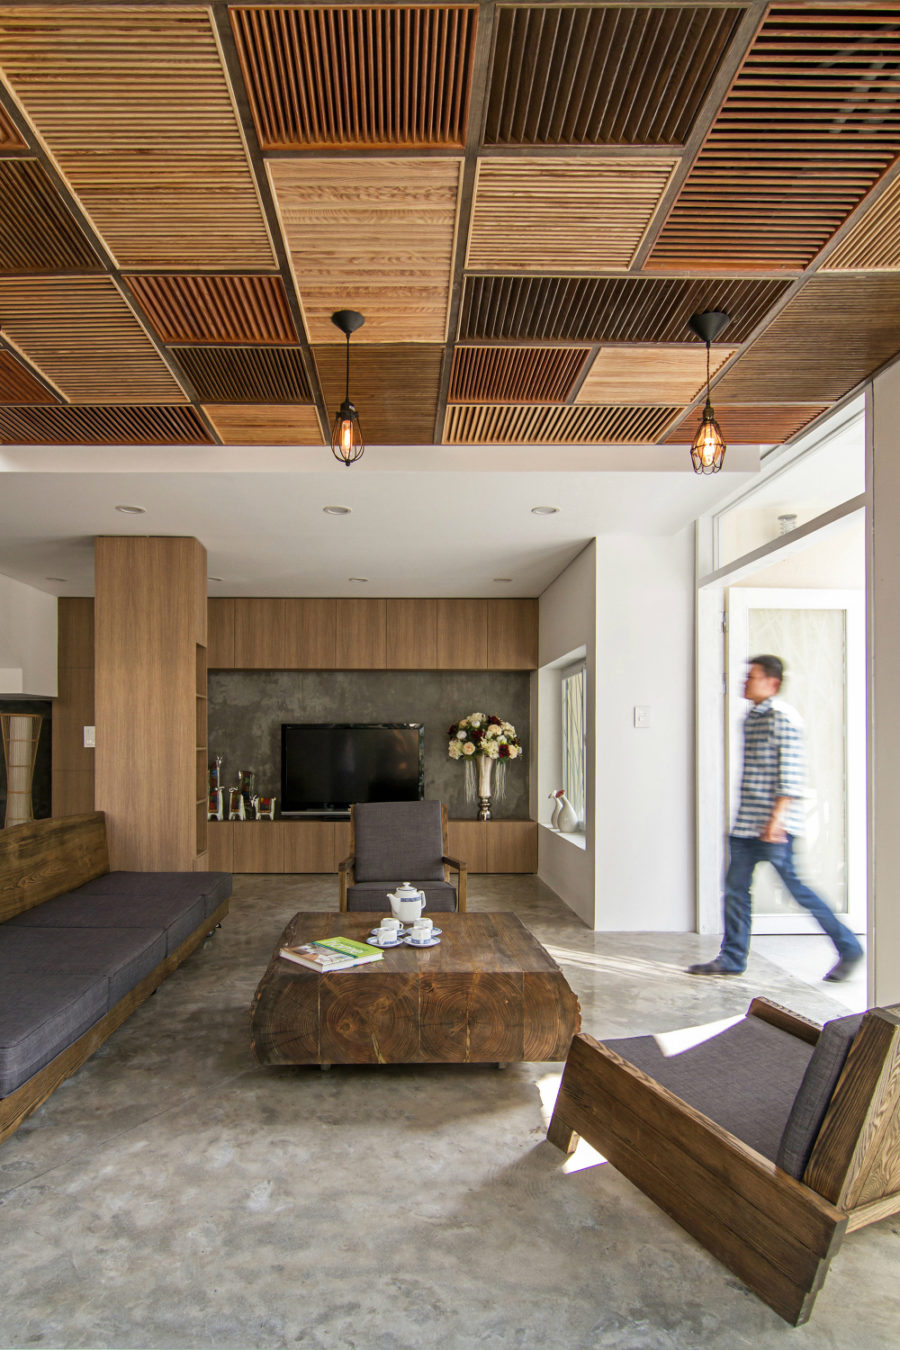 EPV House by AHL architects associates